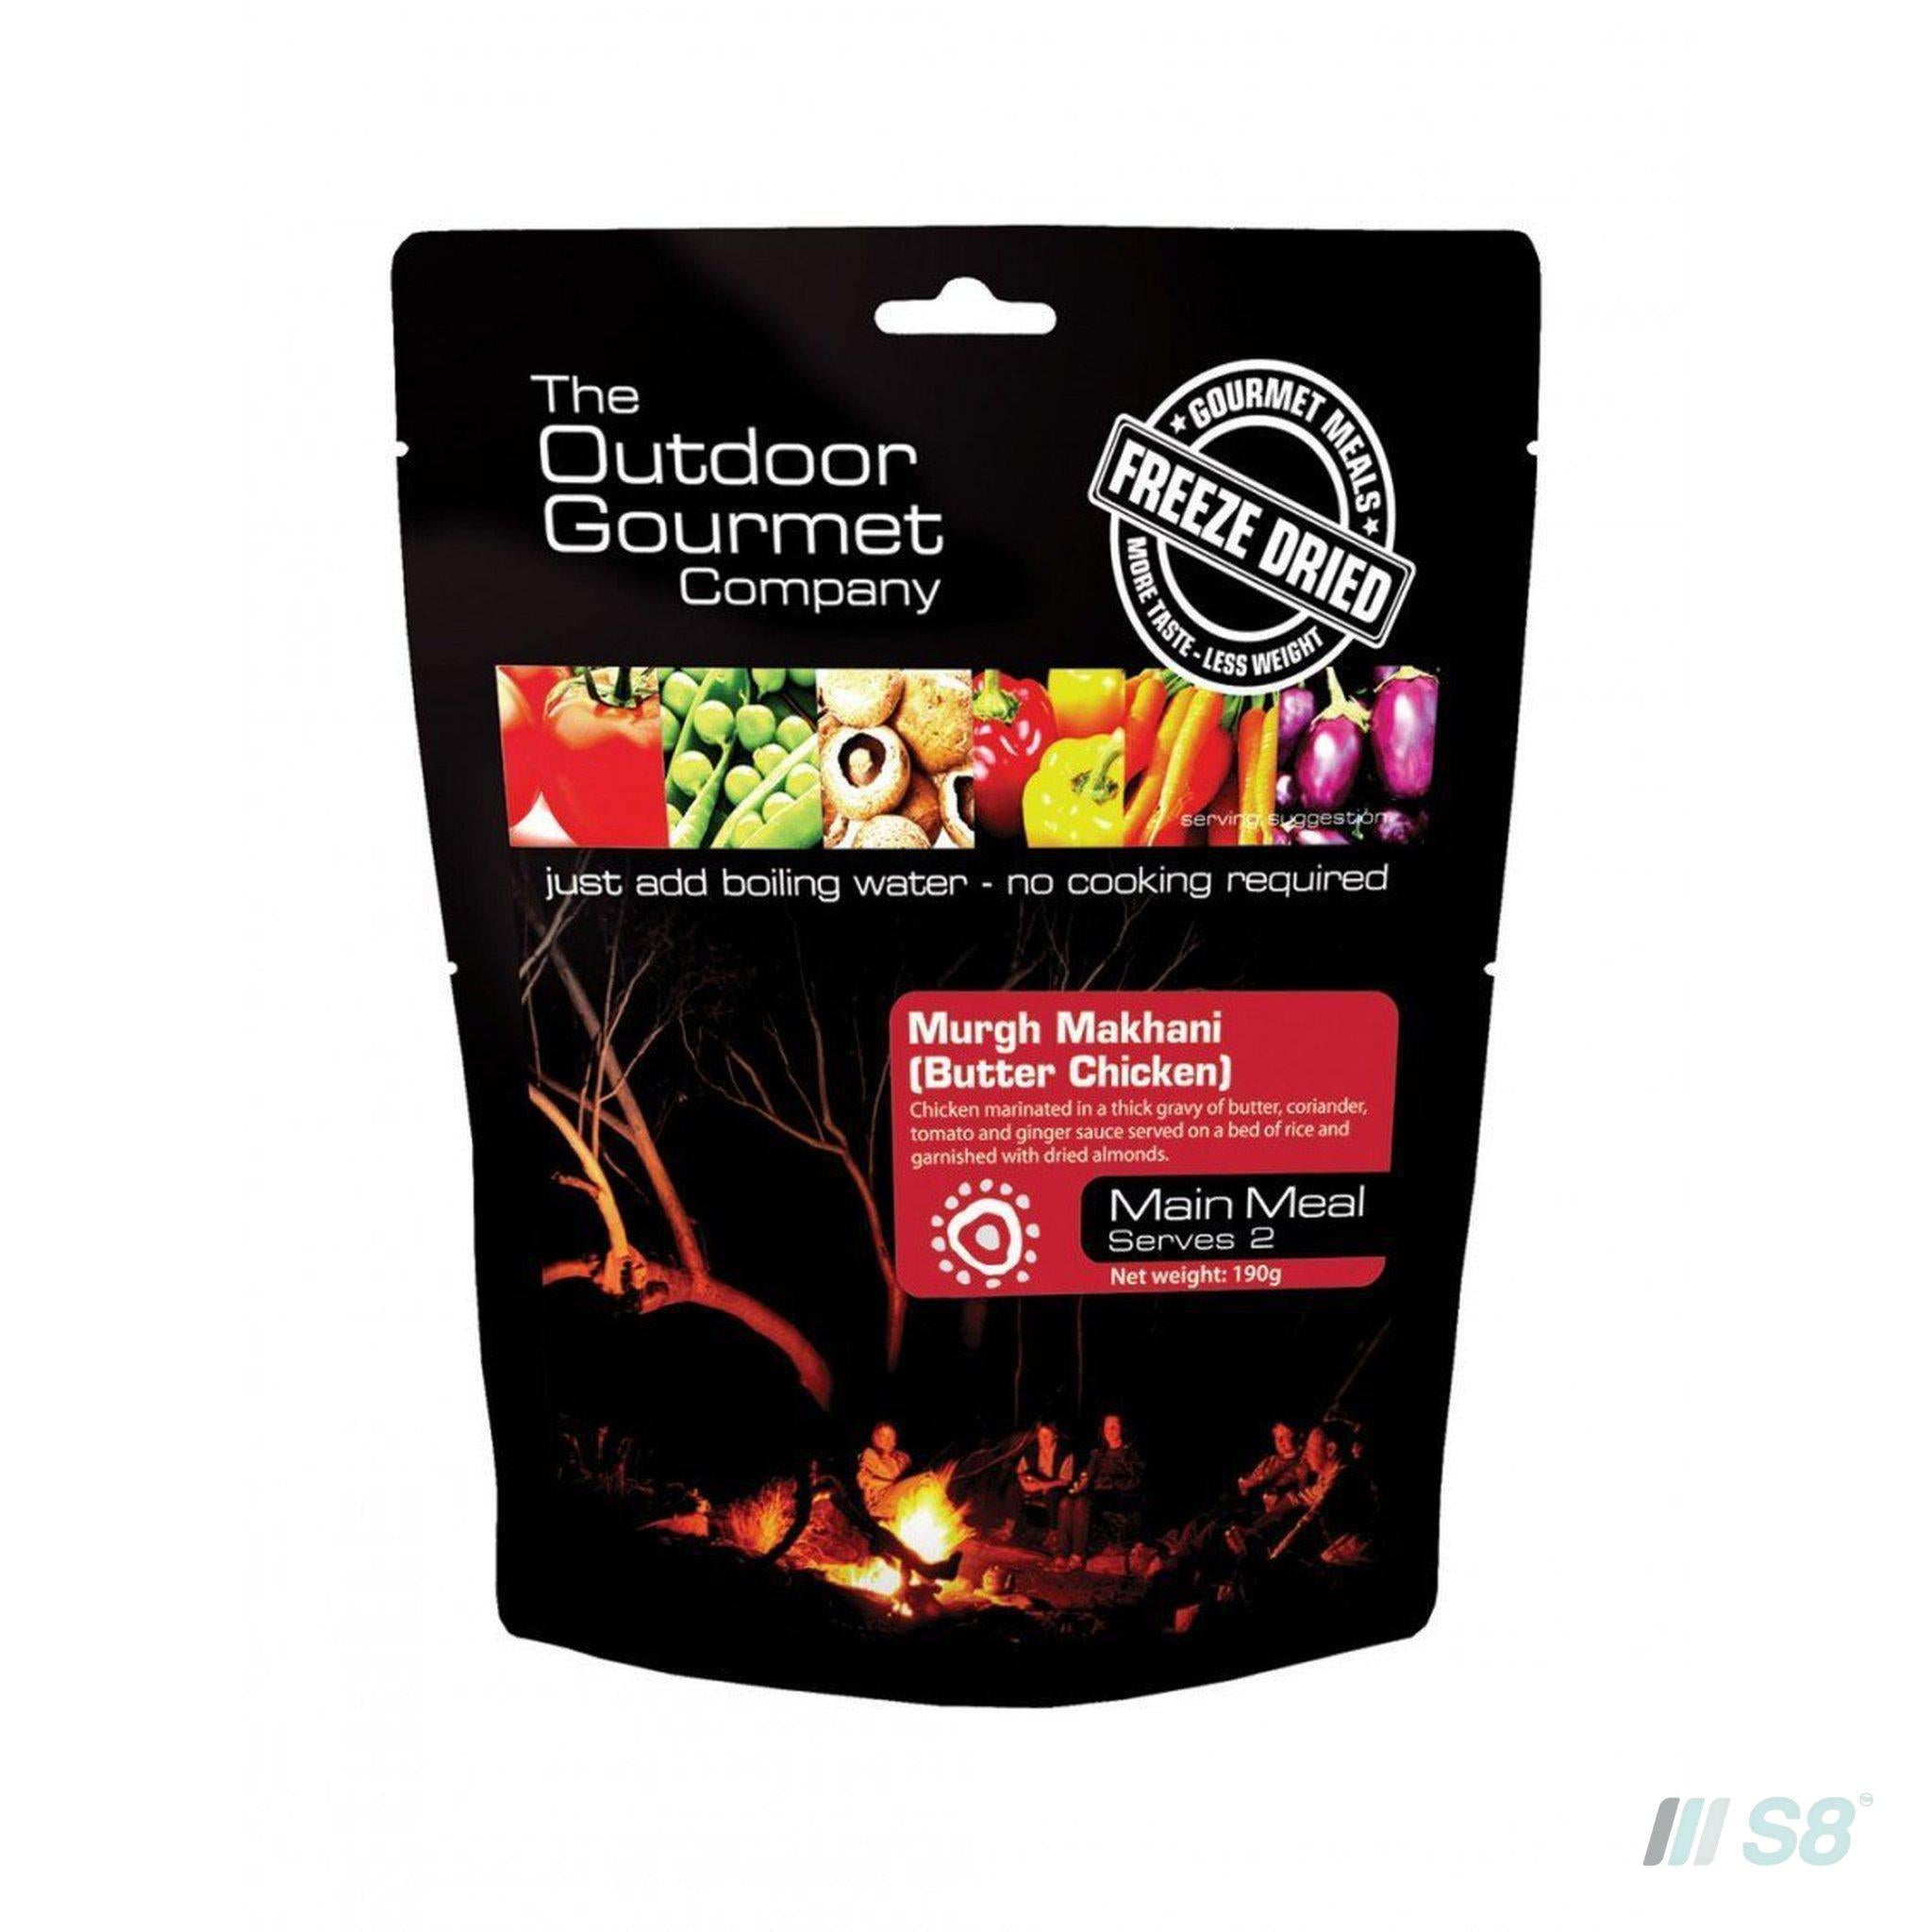 OGC BUTTER CHICKEN-Outdoor Gourmet Company-S8 Products Group